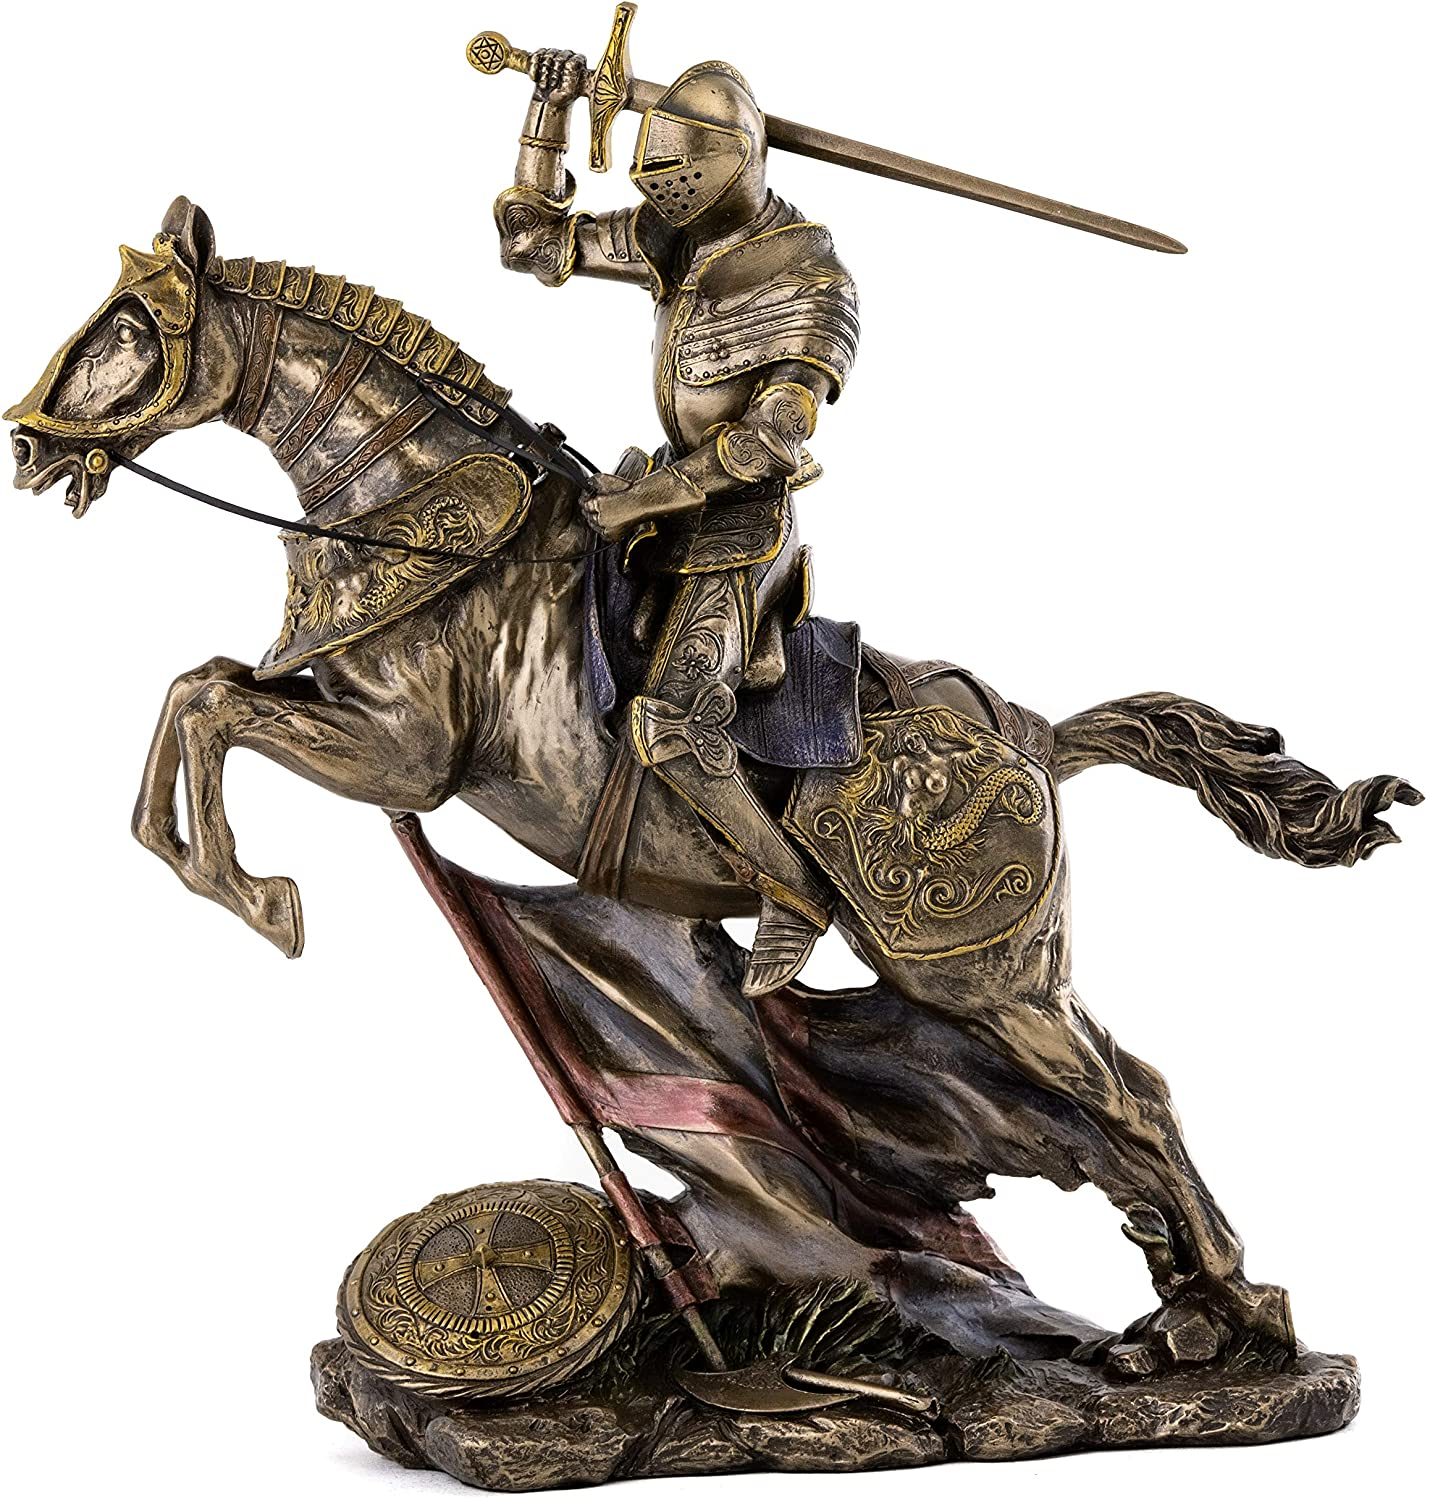 Top Collection Medieval Knight Statue in Armor - Battle Warrior Sculpture on Horse in Premium Cold Cast Bronze - 10.25-Inch Collectible Renaissance Decor Figurine